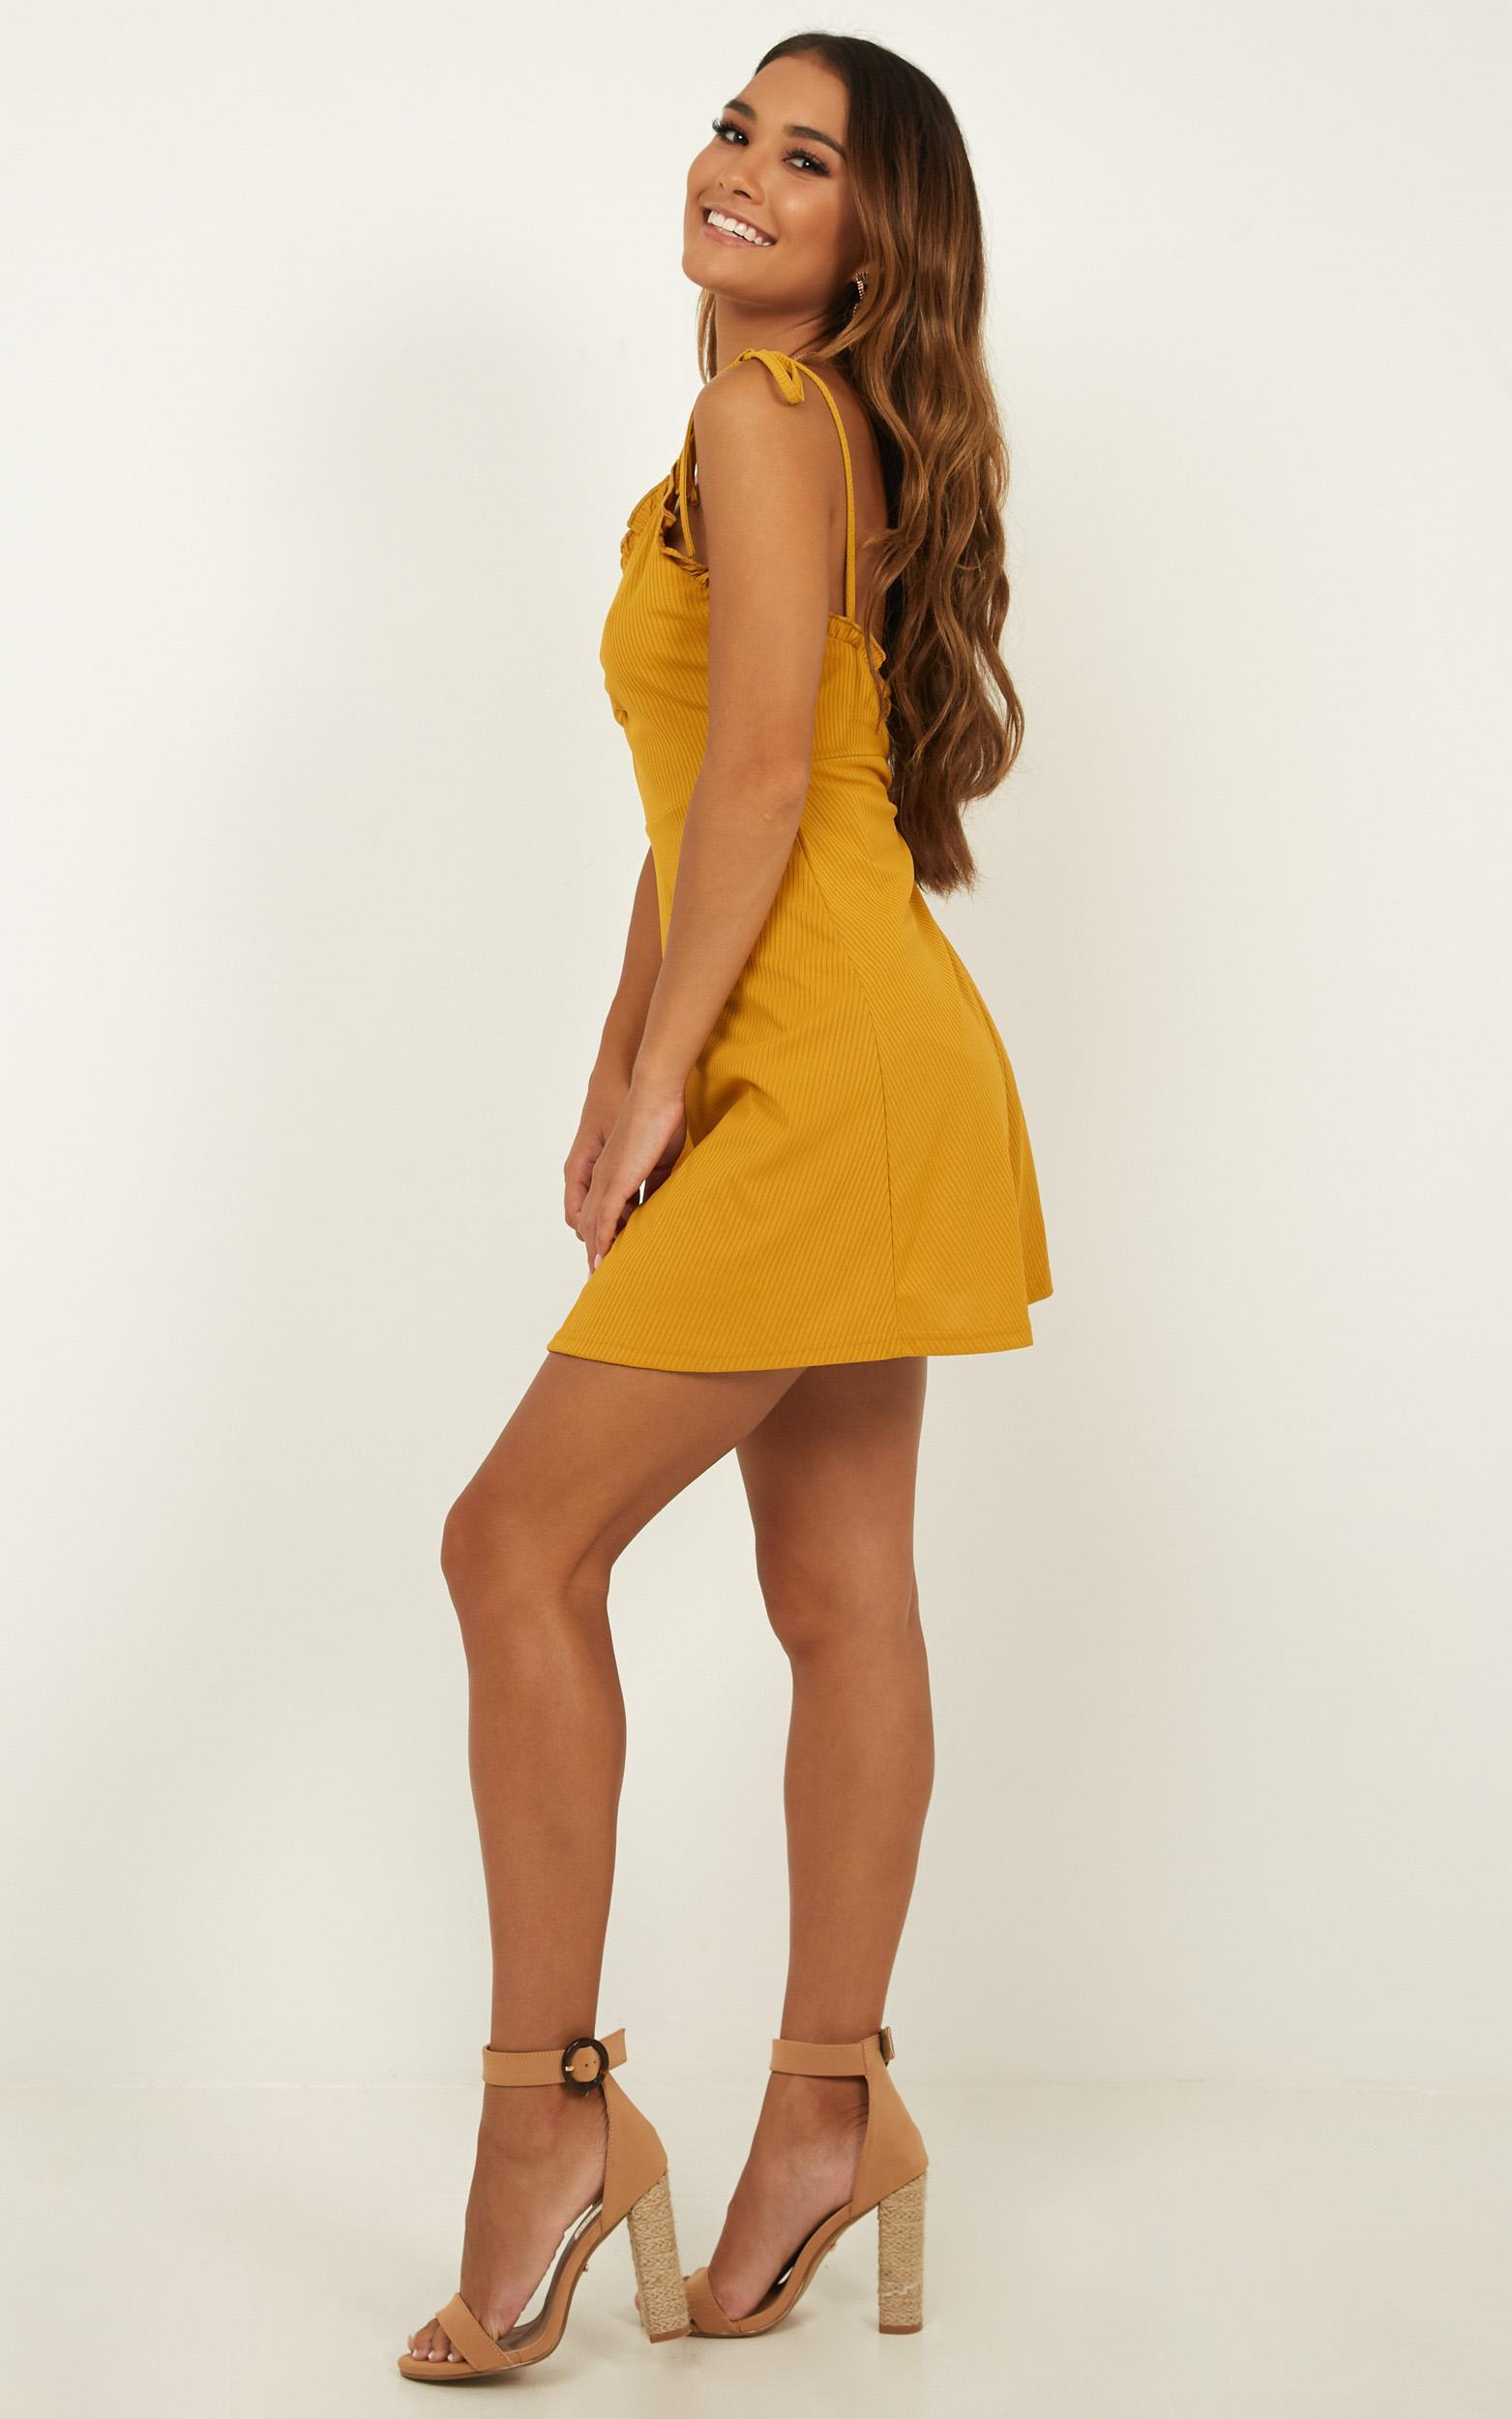 Bring It Out Dress In mustard - 18 (XXXL), Mustard, hi-res image number null